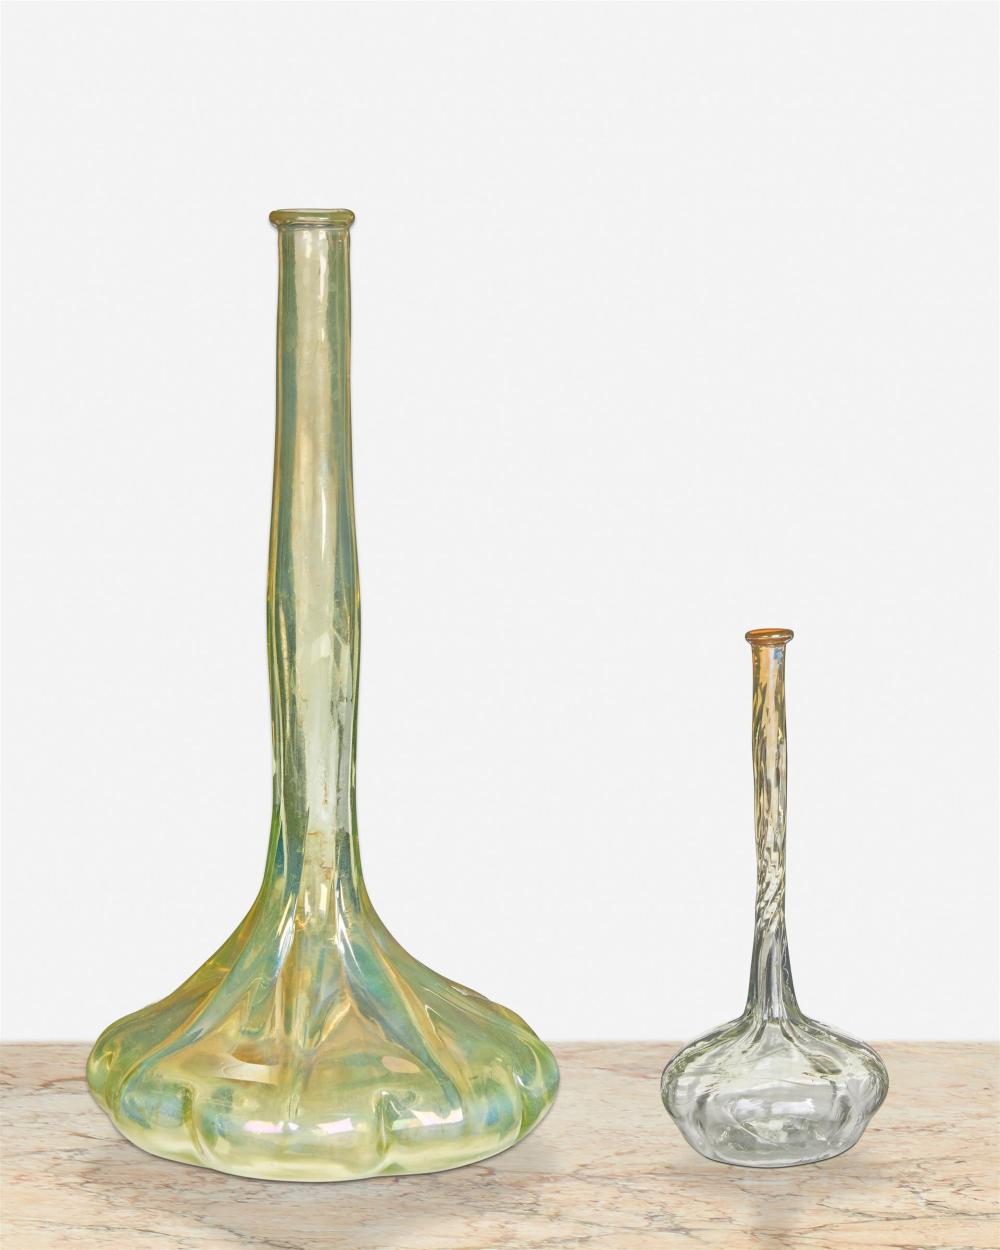 Two L.C. Tiffany Favrile glass bud vases